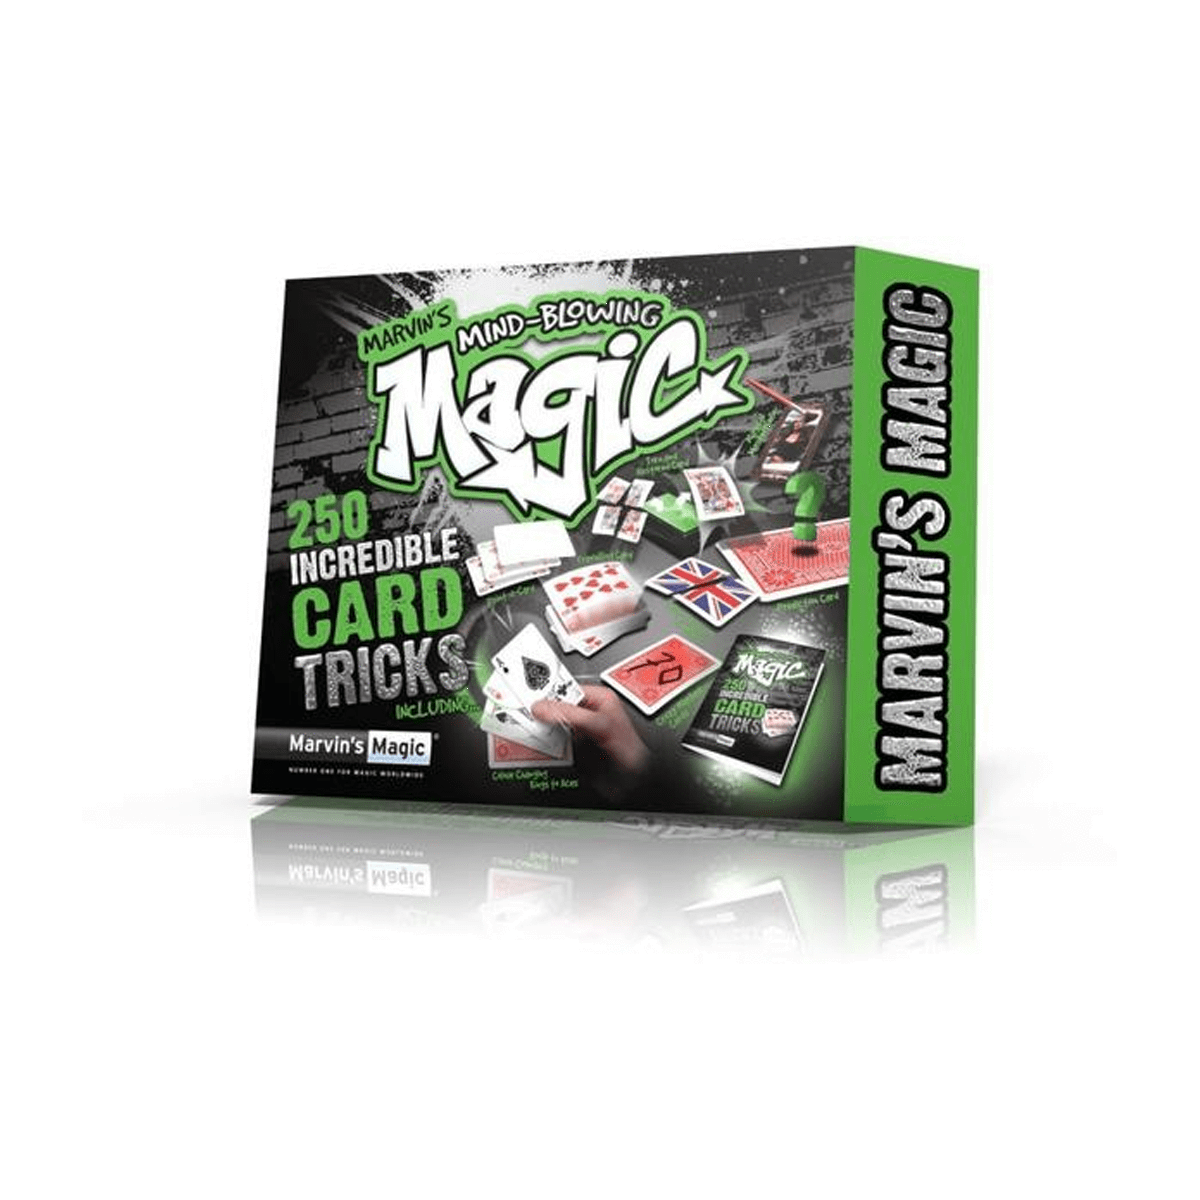 Marvin's Magic MMB 5730 Incredible Card Tricks - Green